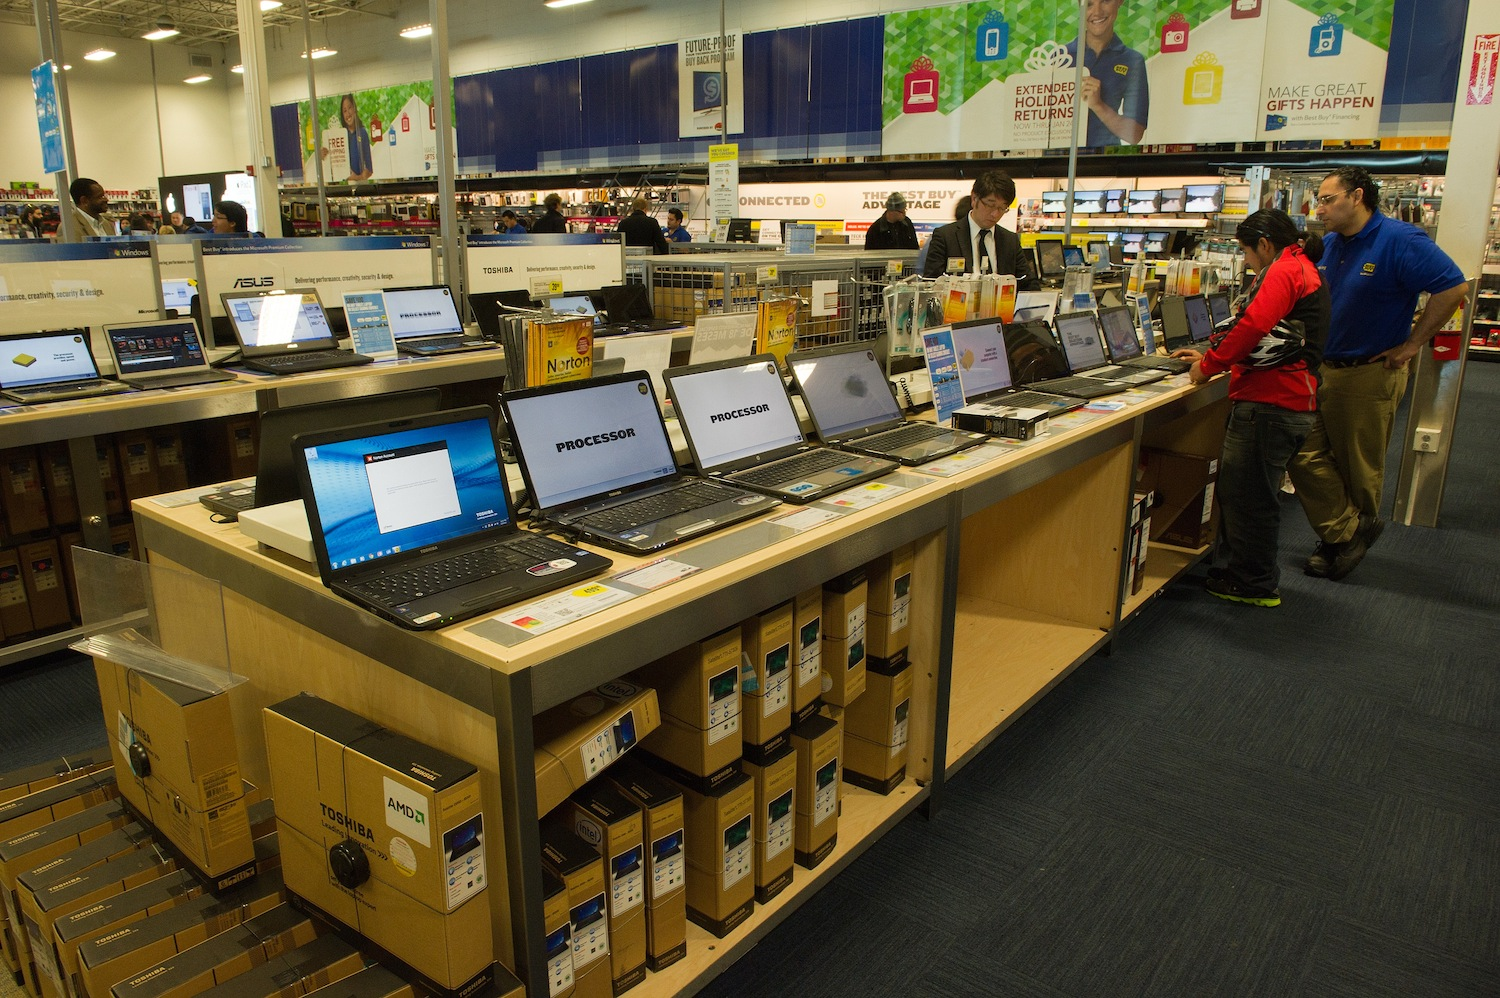 Customers look at laptop computers at a Best Buy store.